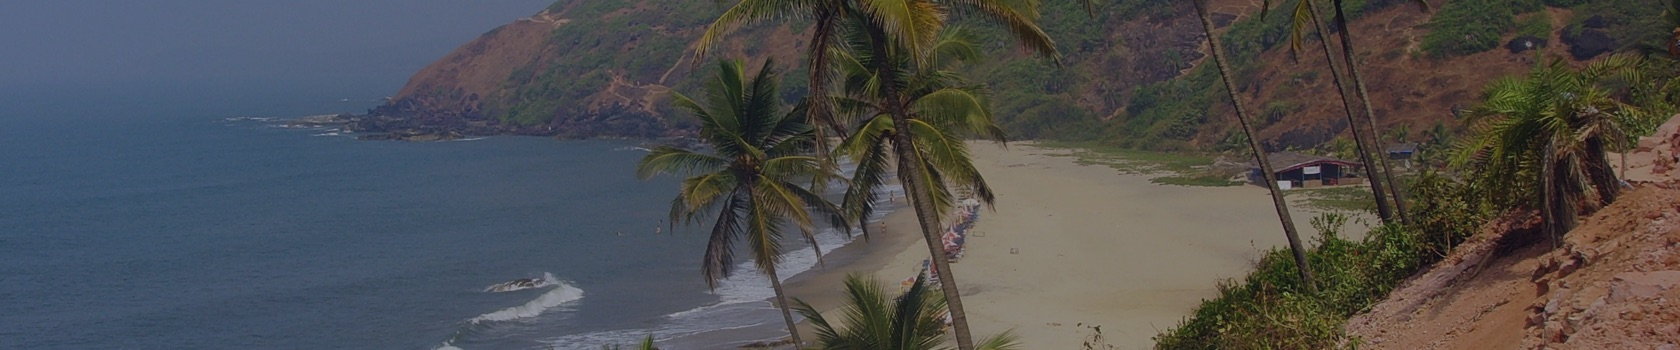 Adventure things to do in Goa